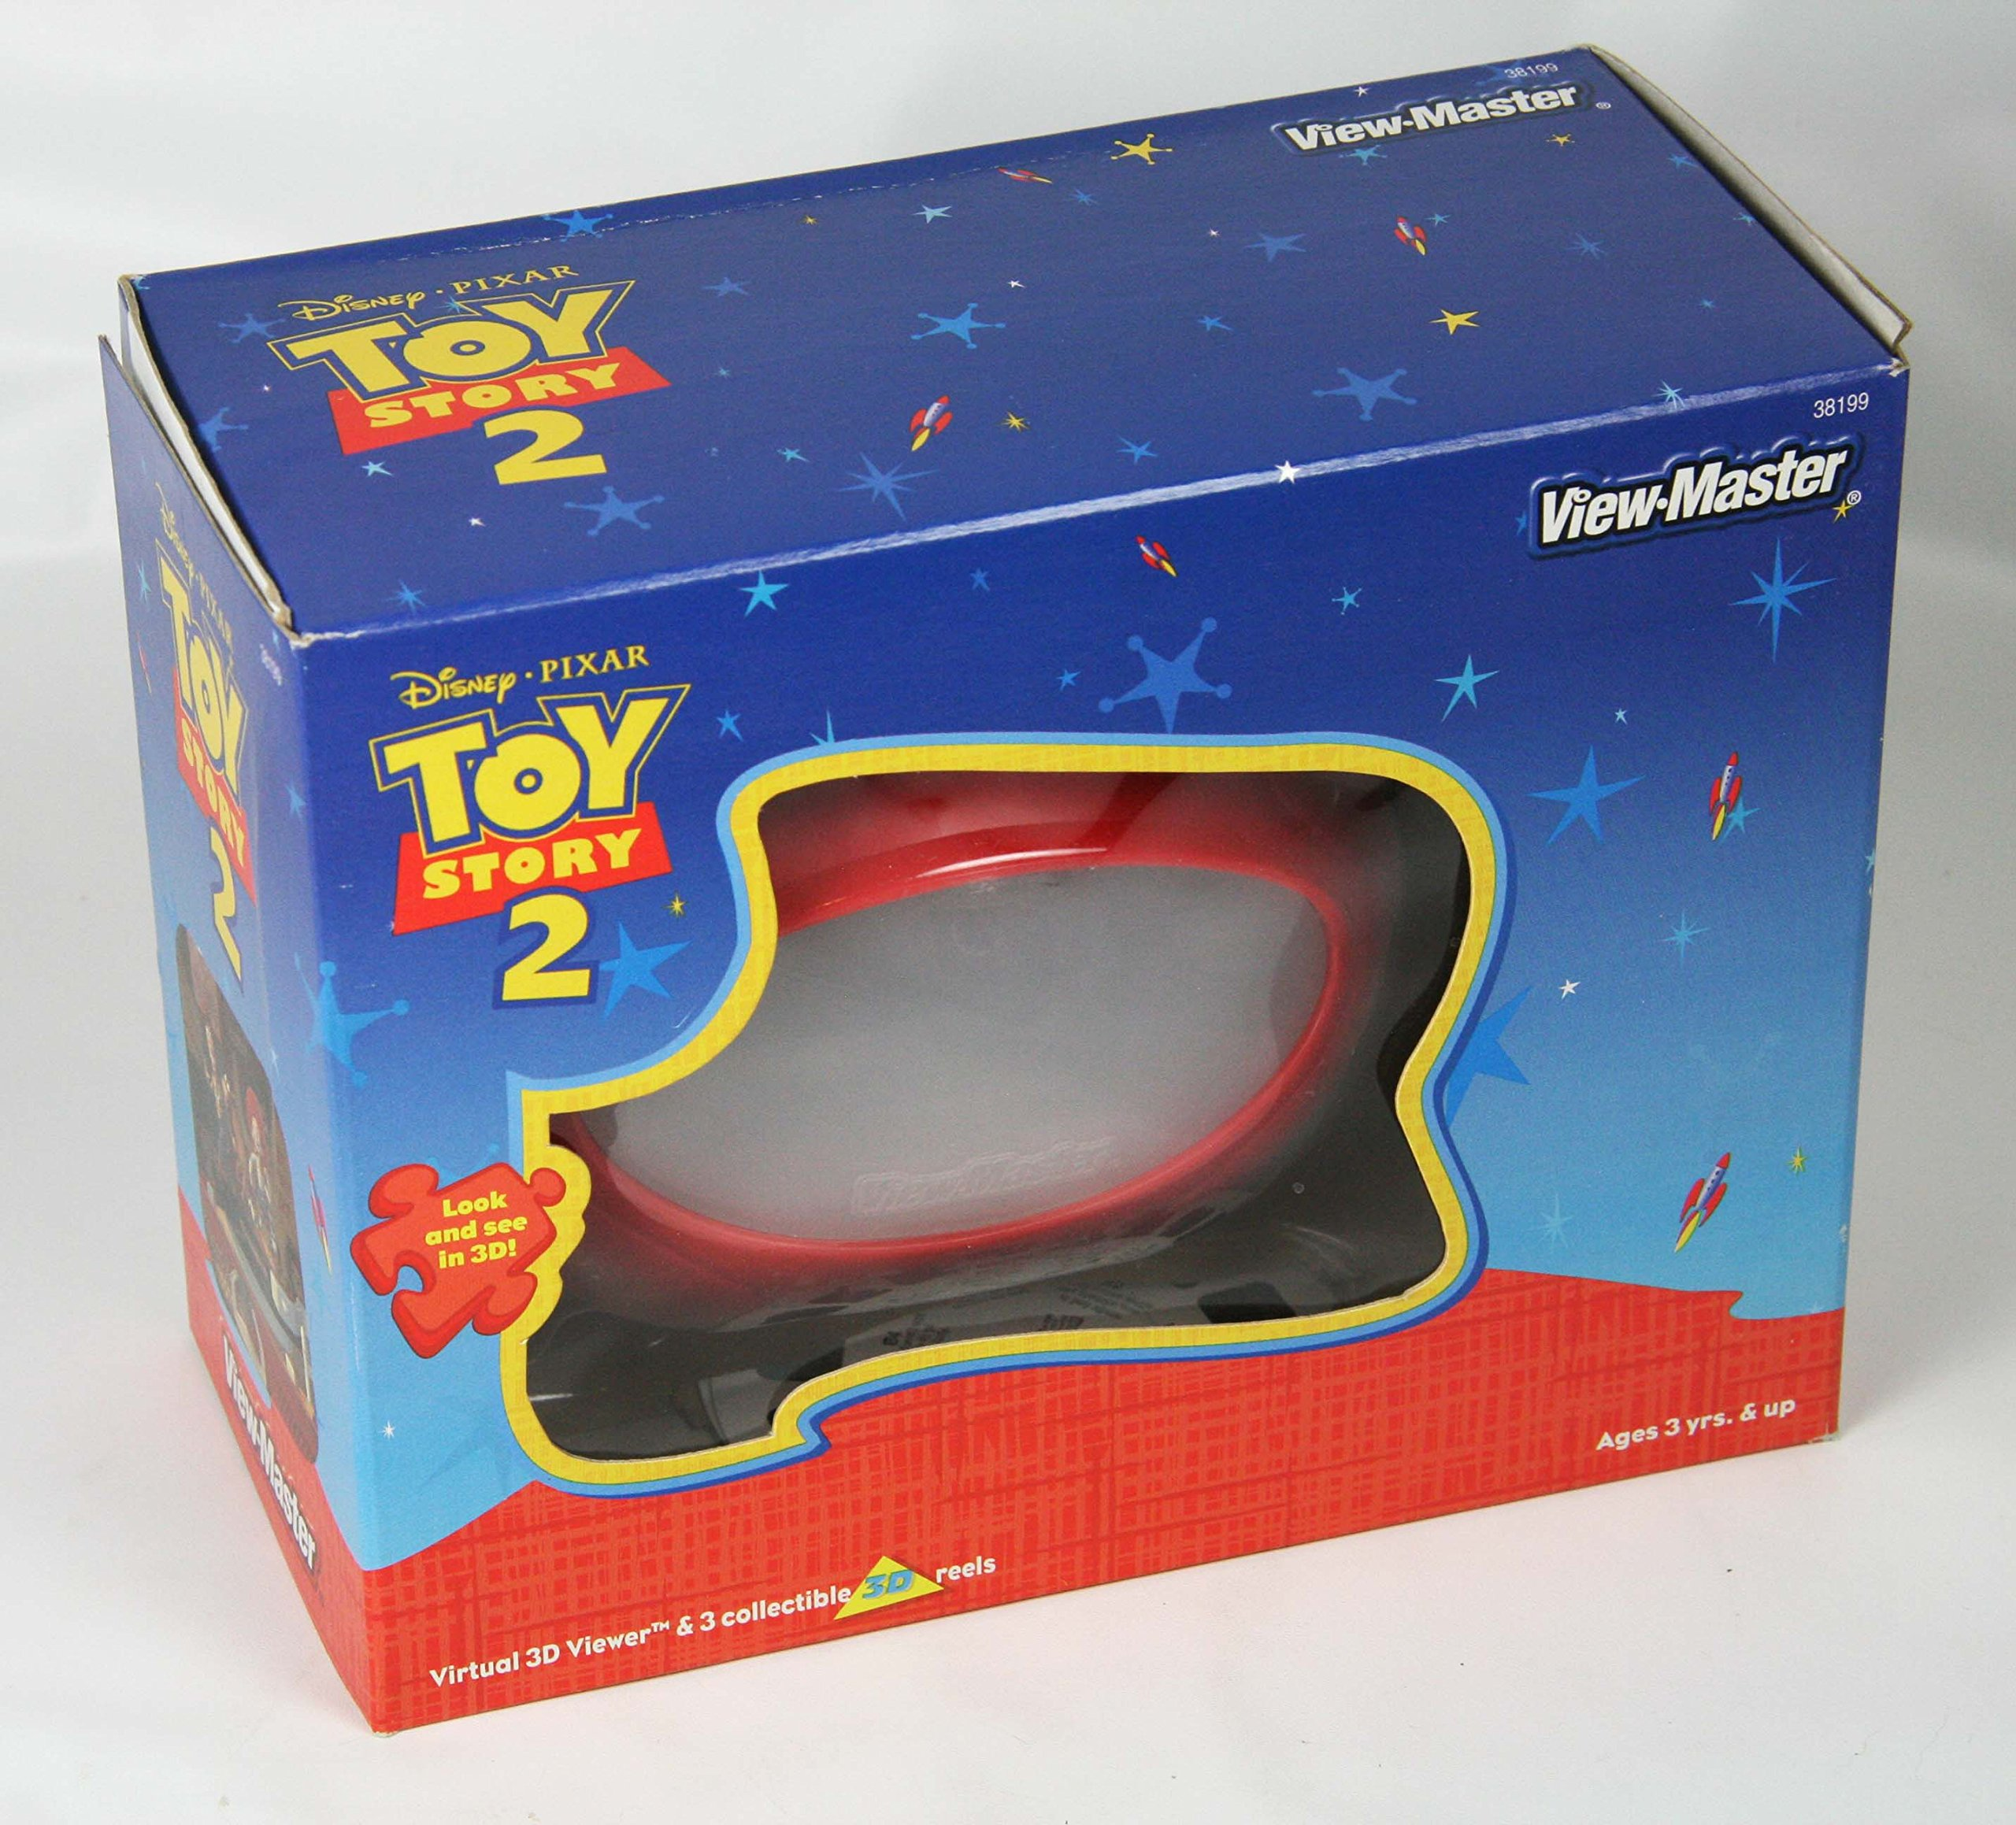 ViewMaster Gift Set Toy Story 2 - Virtual Viewer and 3 Reels